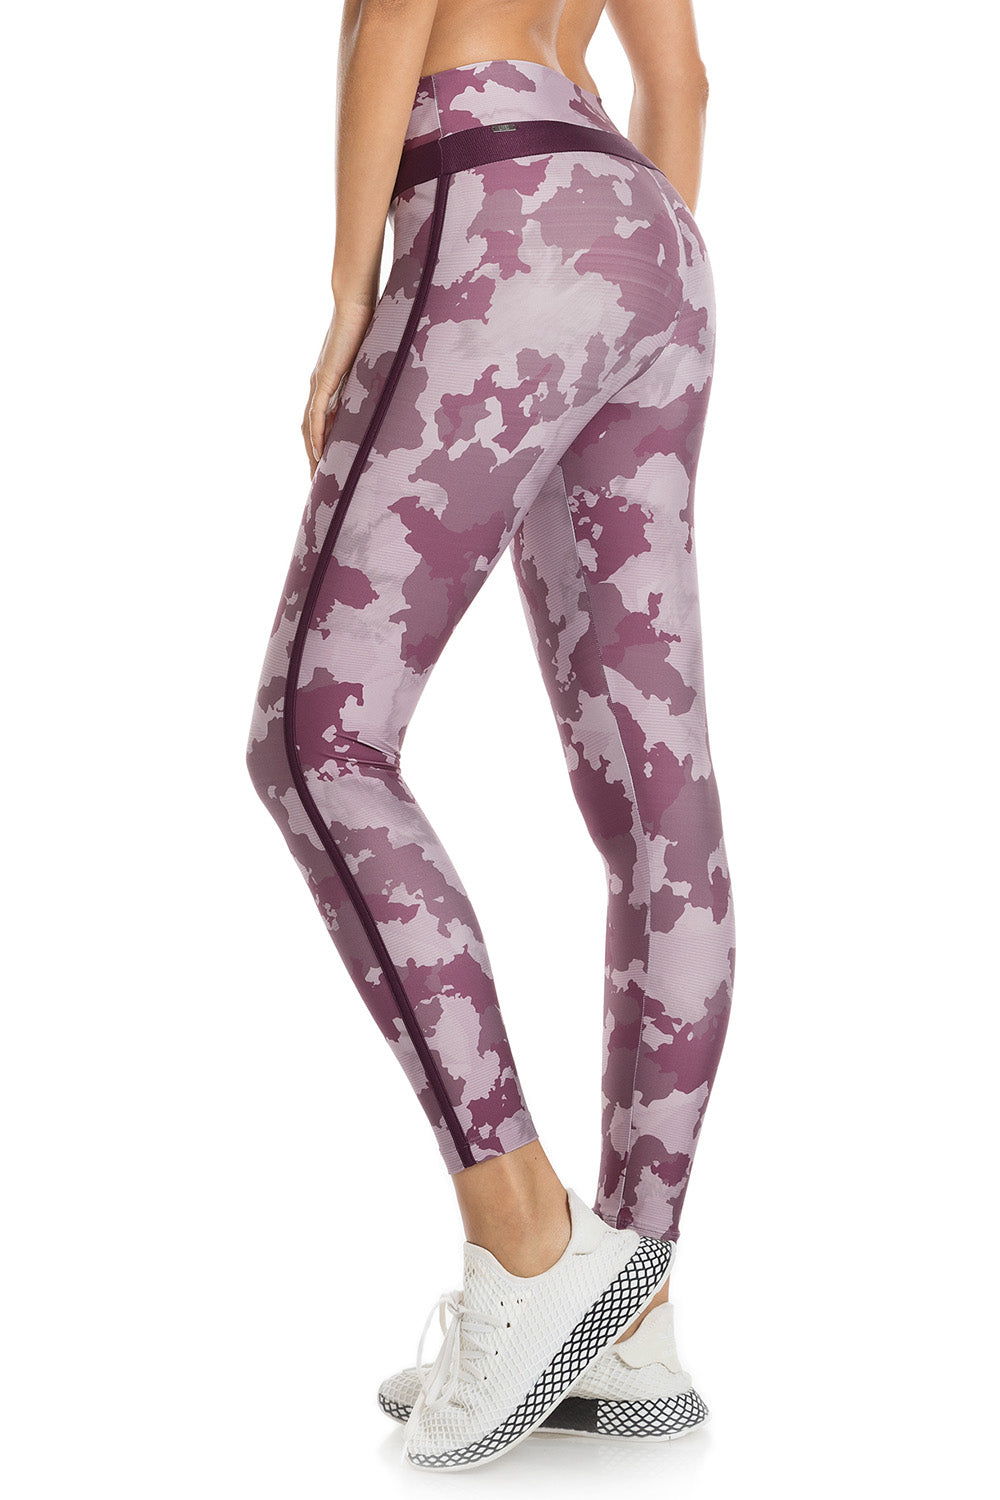 Cool Camuflage Legging